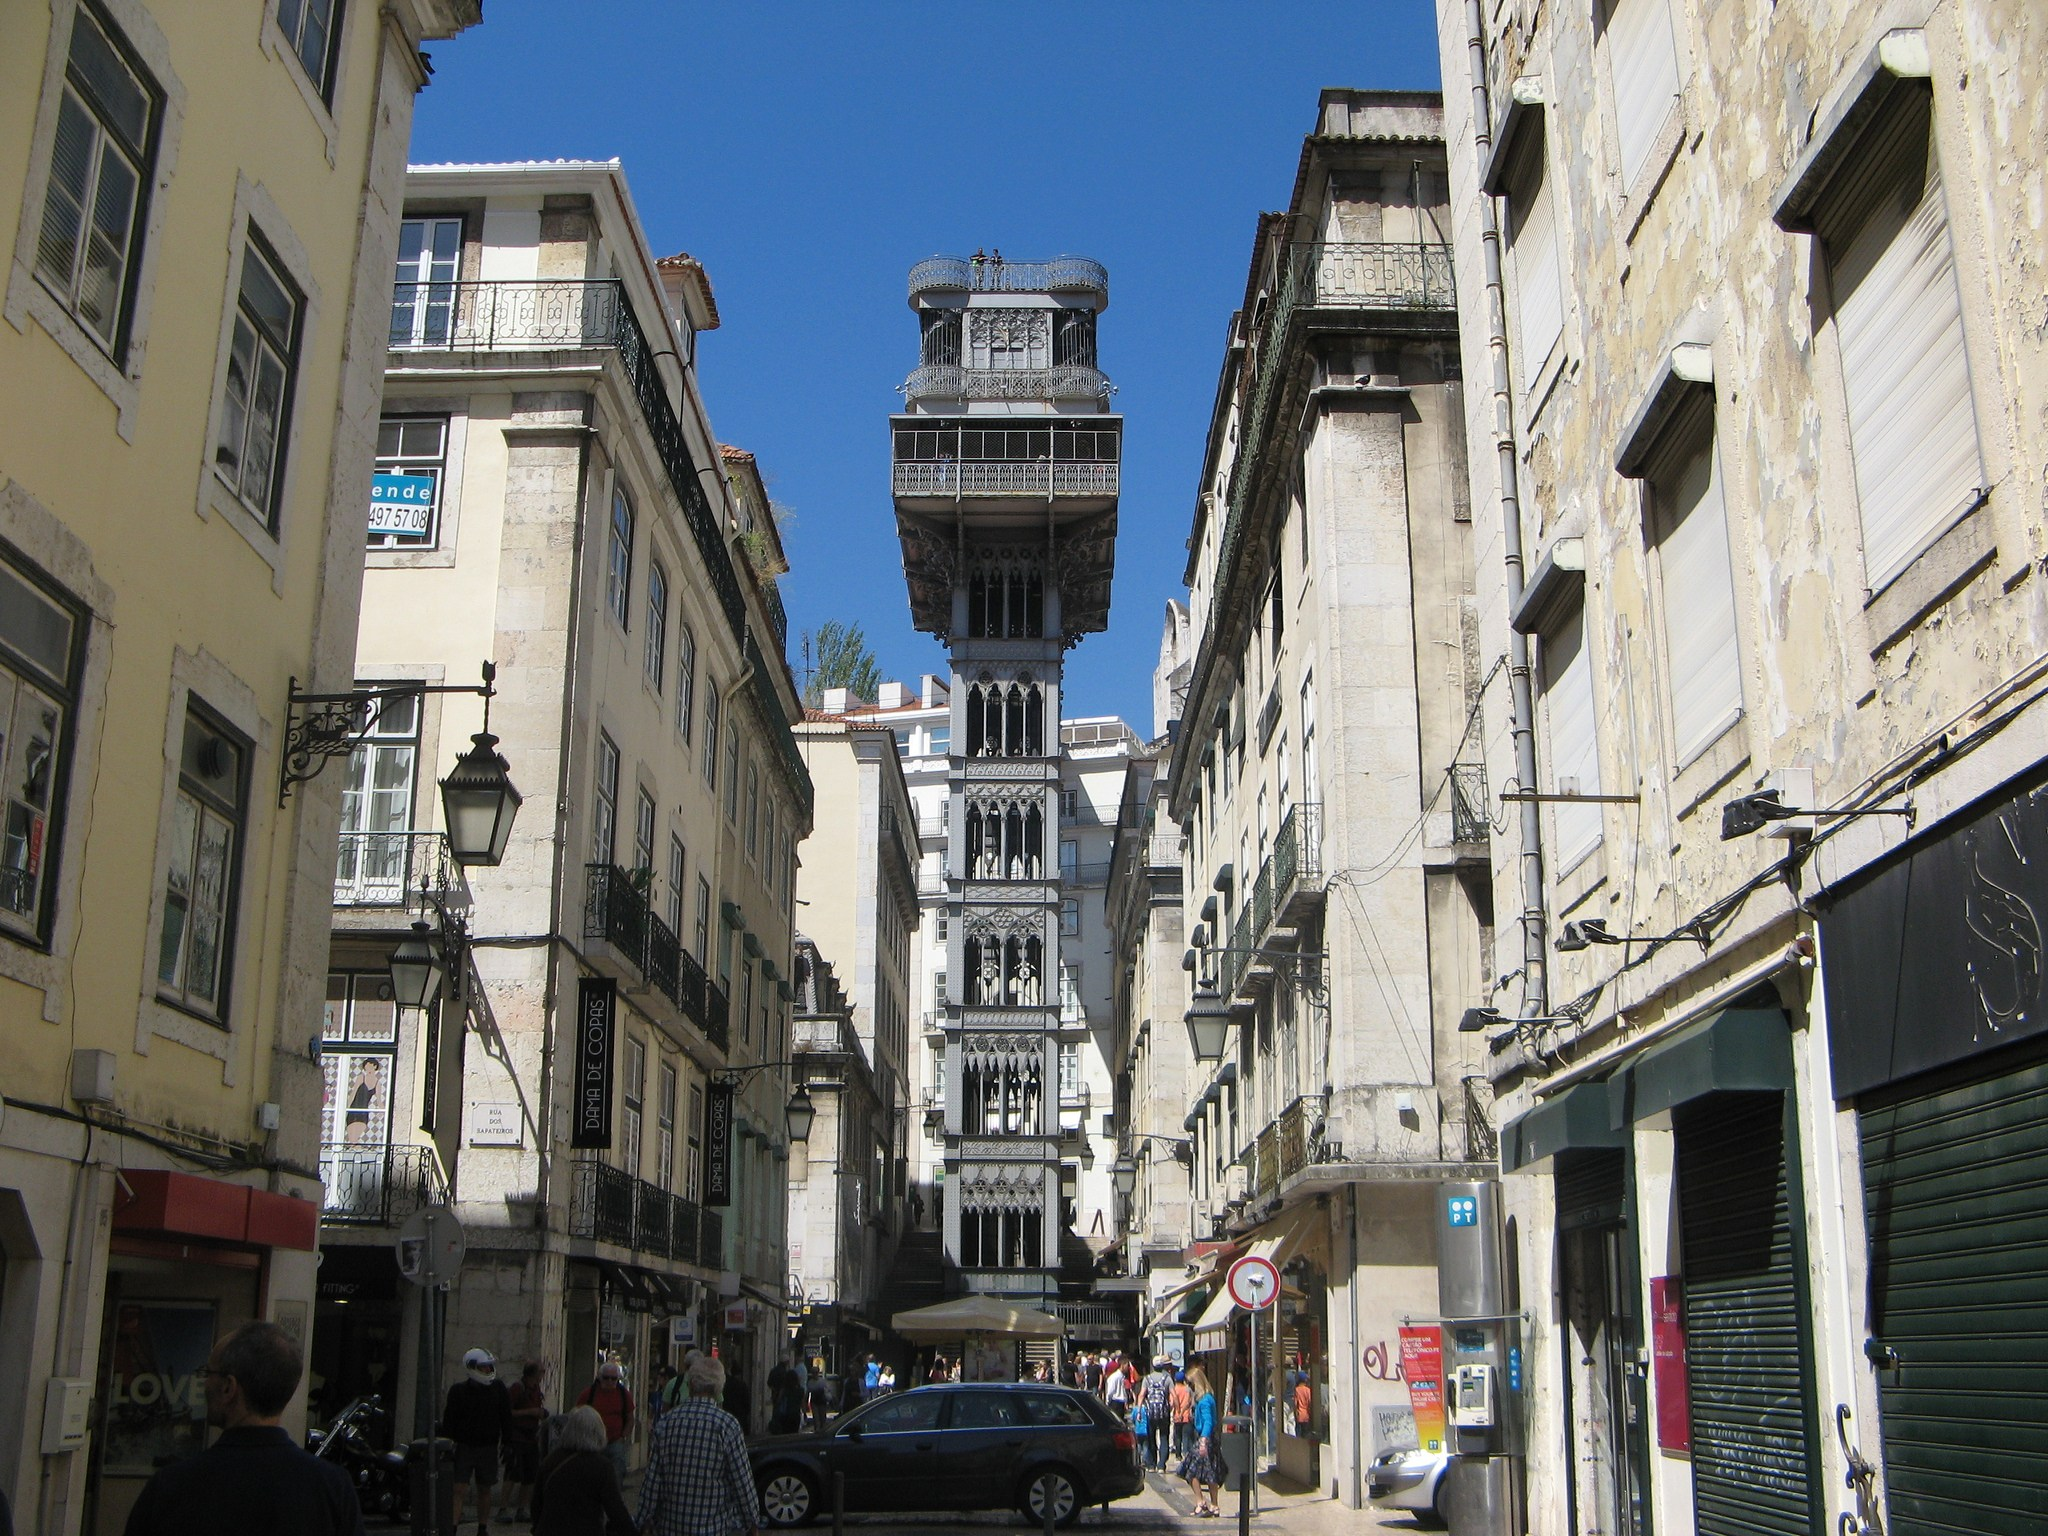 Santa Justa Elevator - City Center of Lisbon